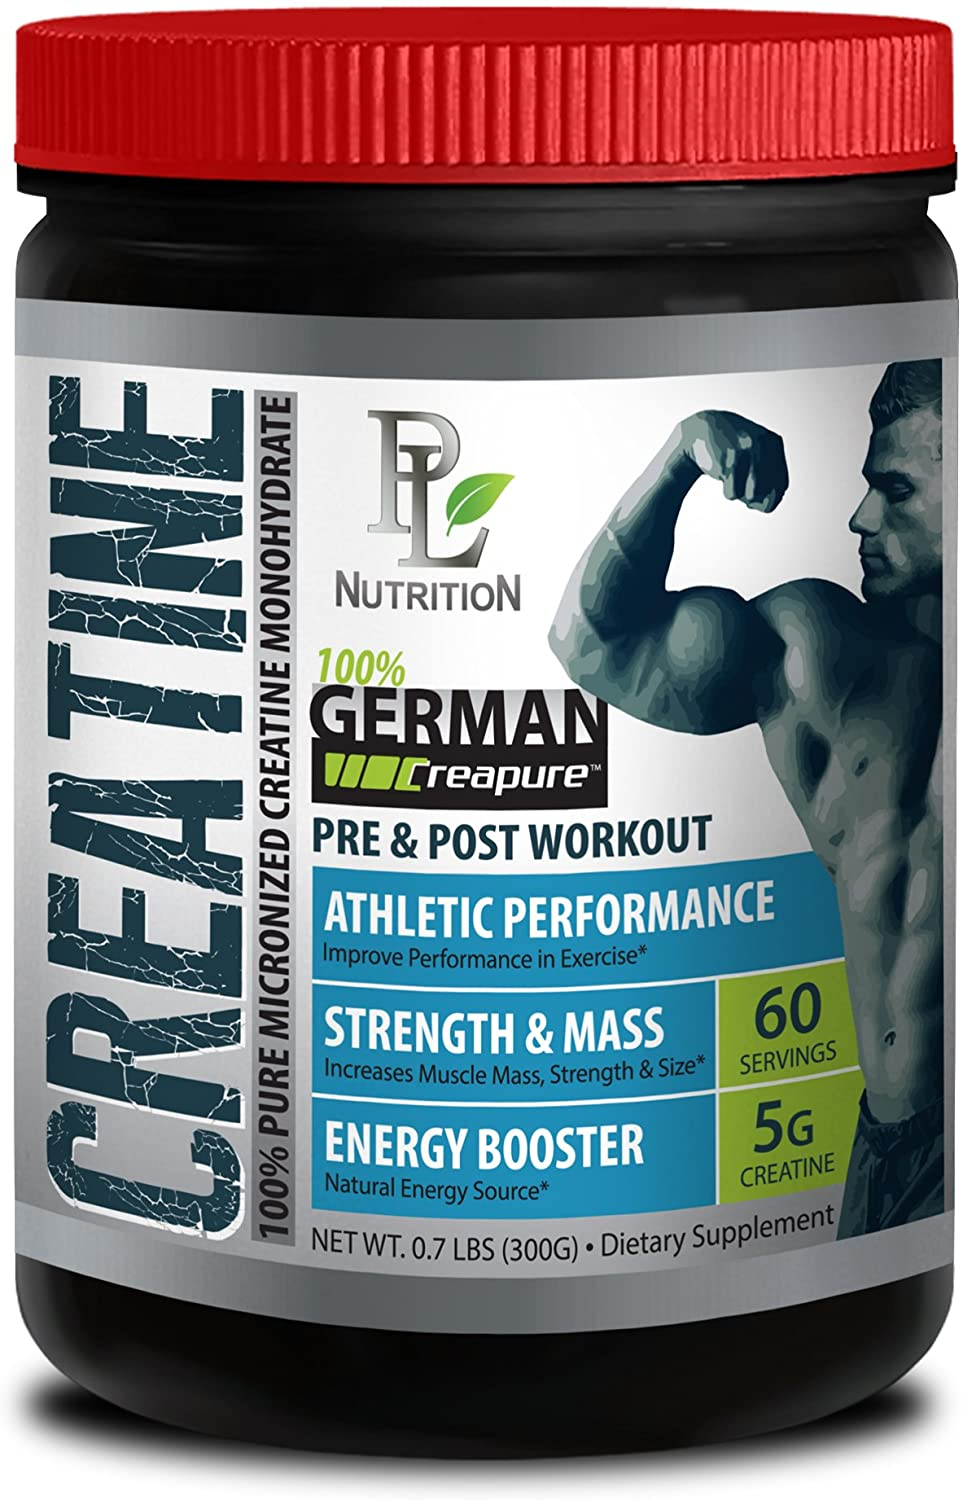 Endurance Booster - German CREATINE Powder - MICRONIZED CREATINE MONOHYDRATE CREAPURE 300G 60 Servings - Energy Supplements - 1 CAN